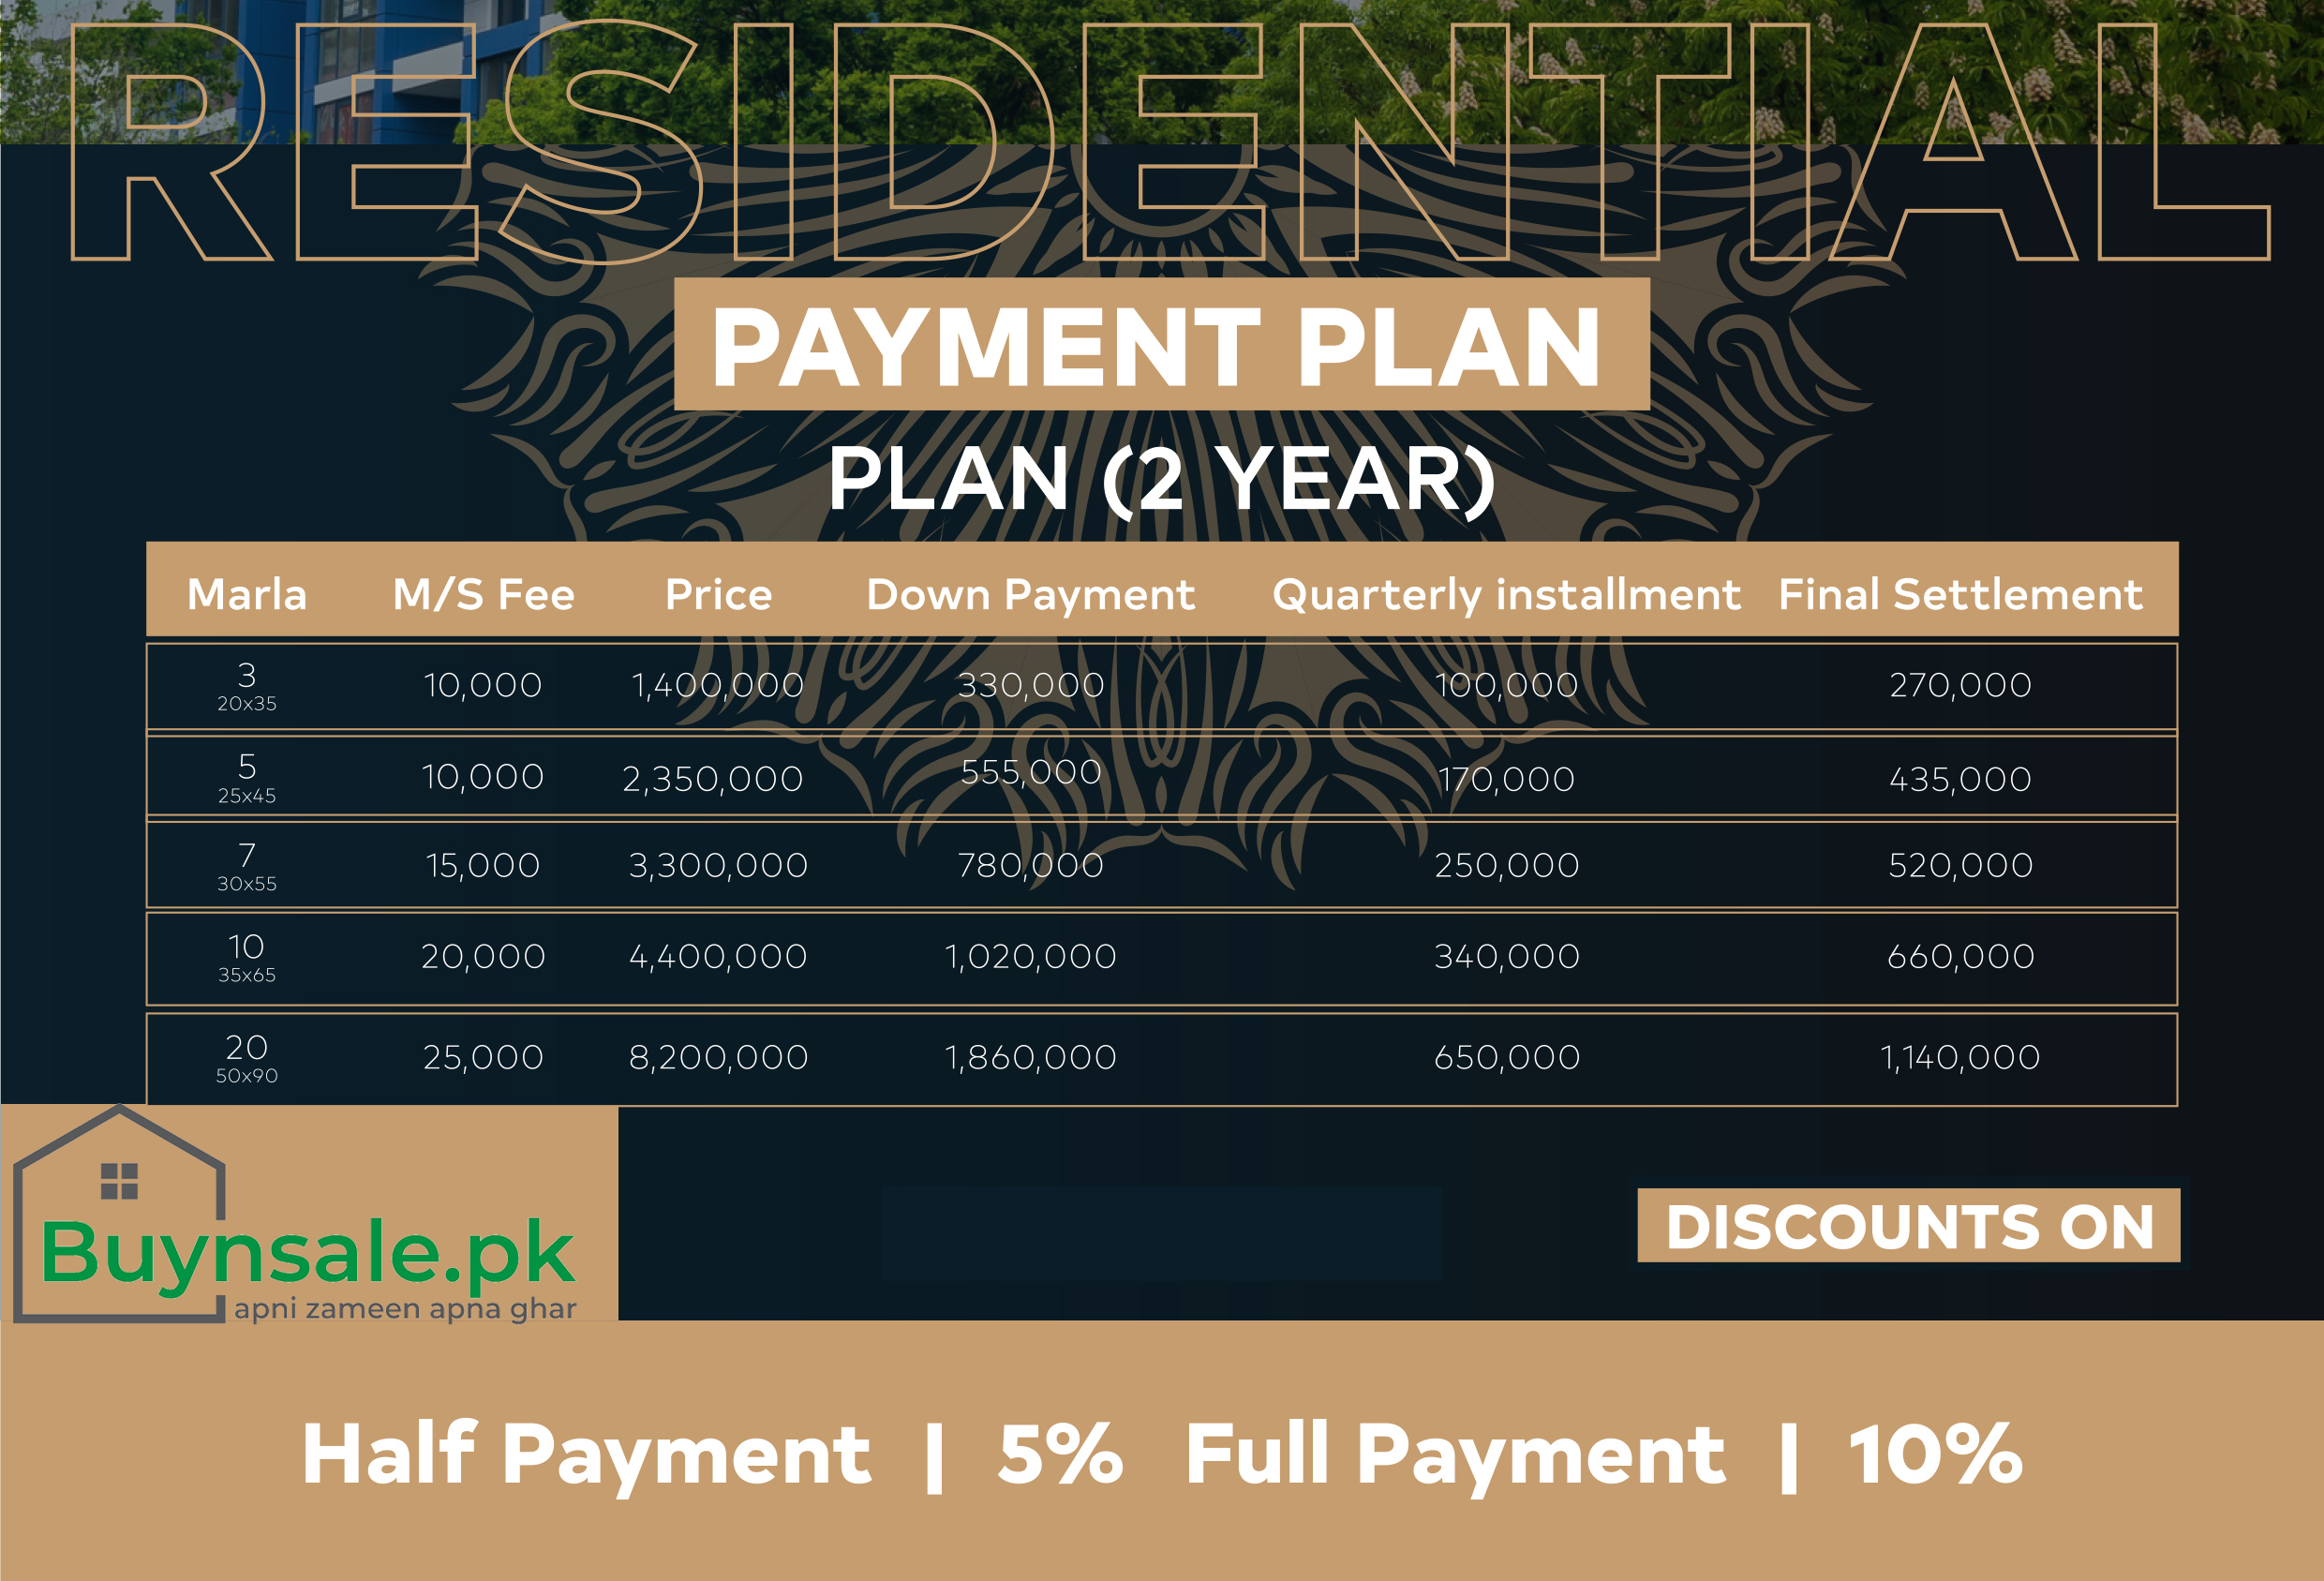 Hill view Garden Islamabad Residential payment Plane